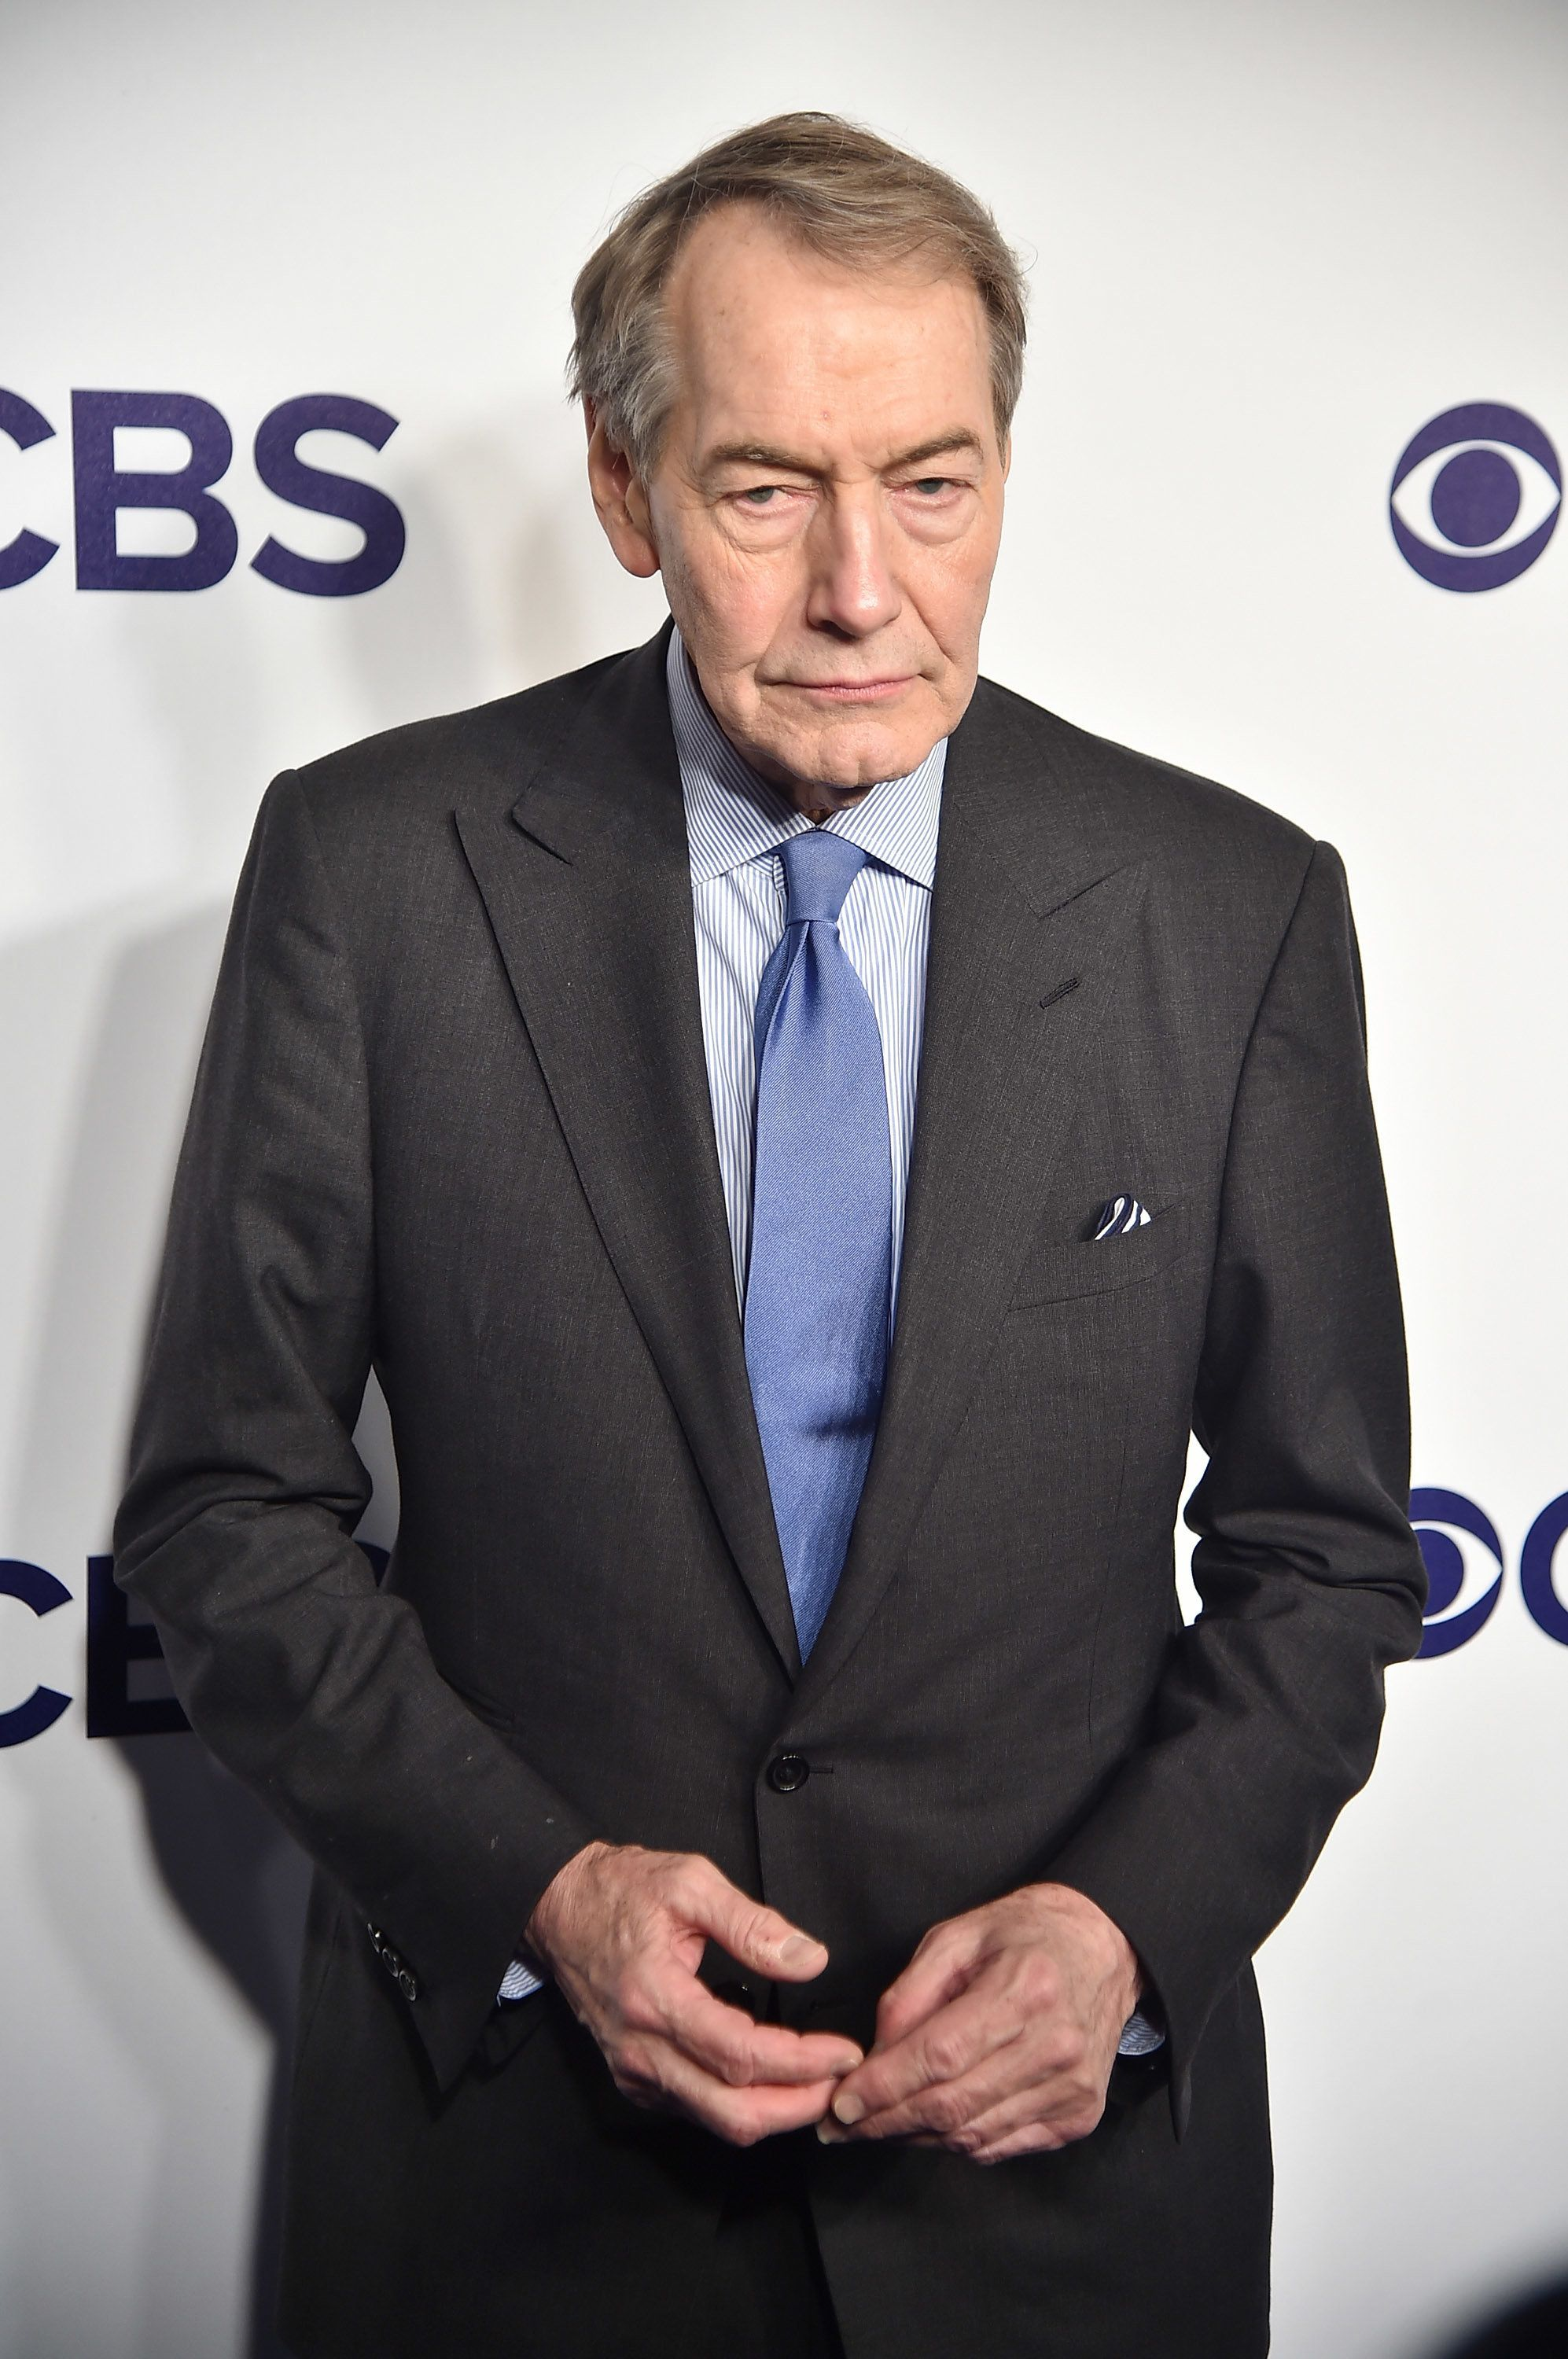 CBS, PBS Cut Ties With Charlie Rose Following Sexual Misconduct